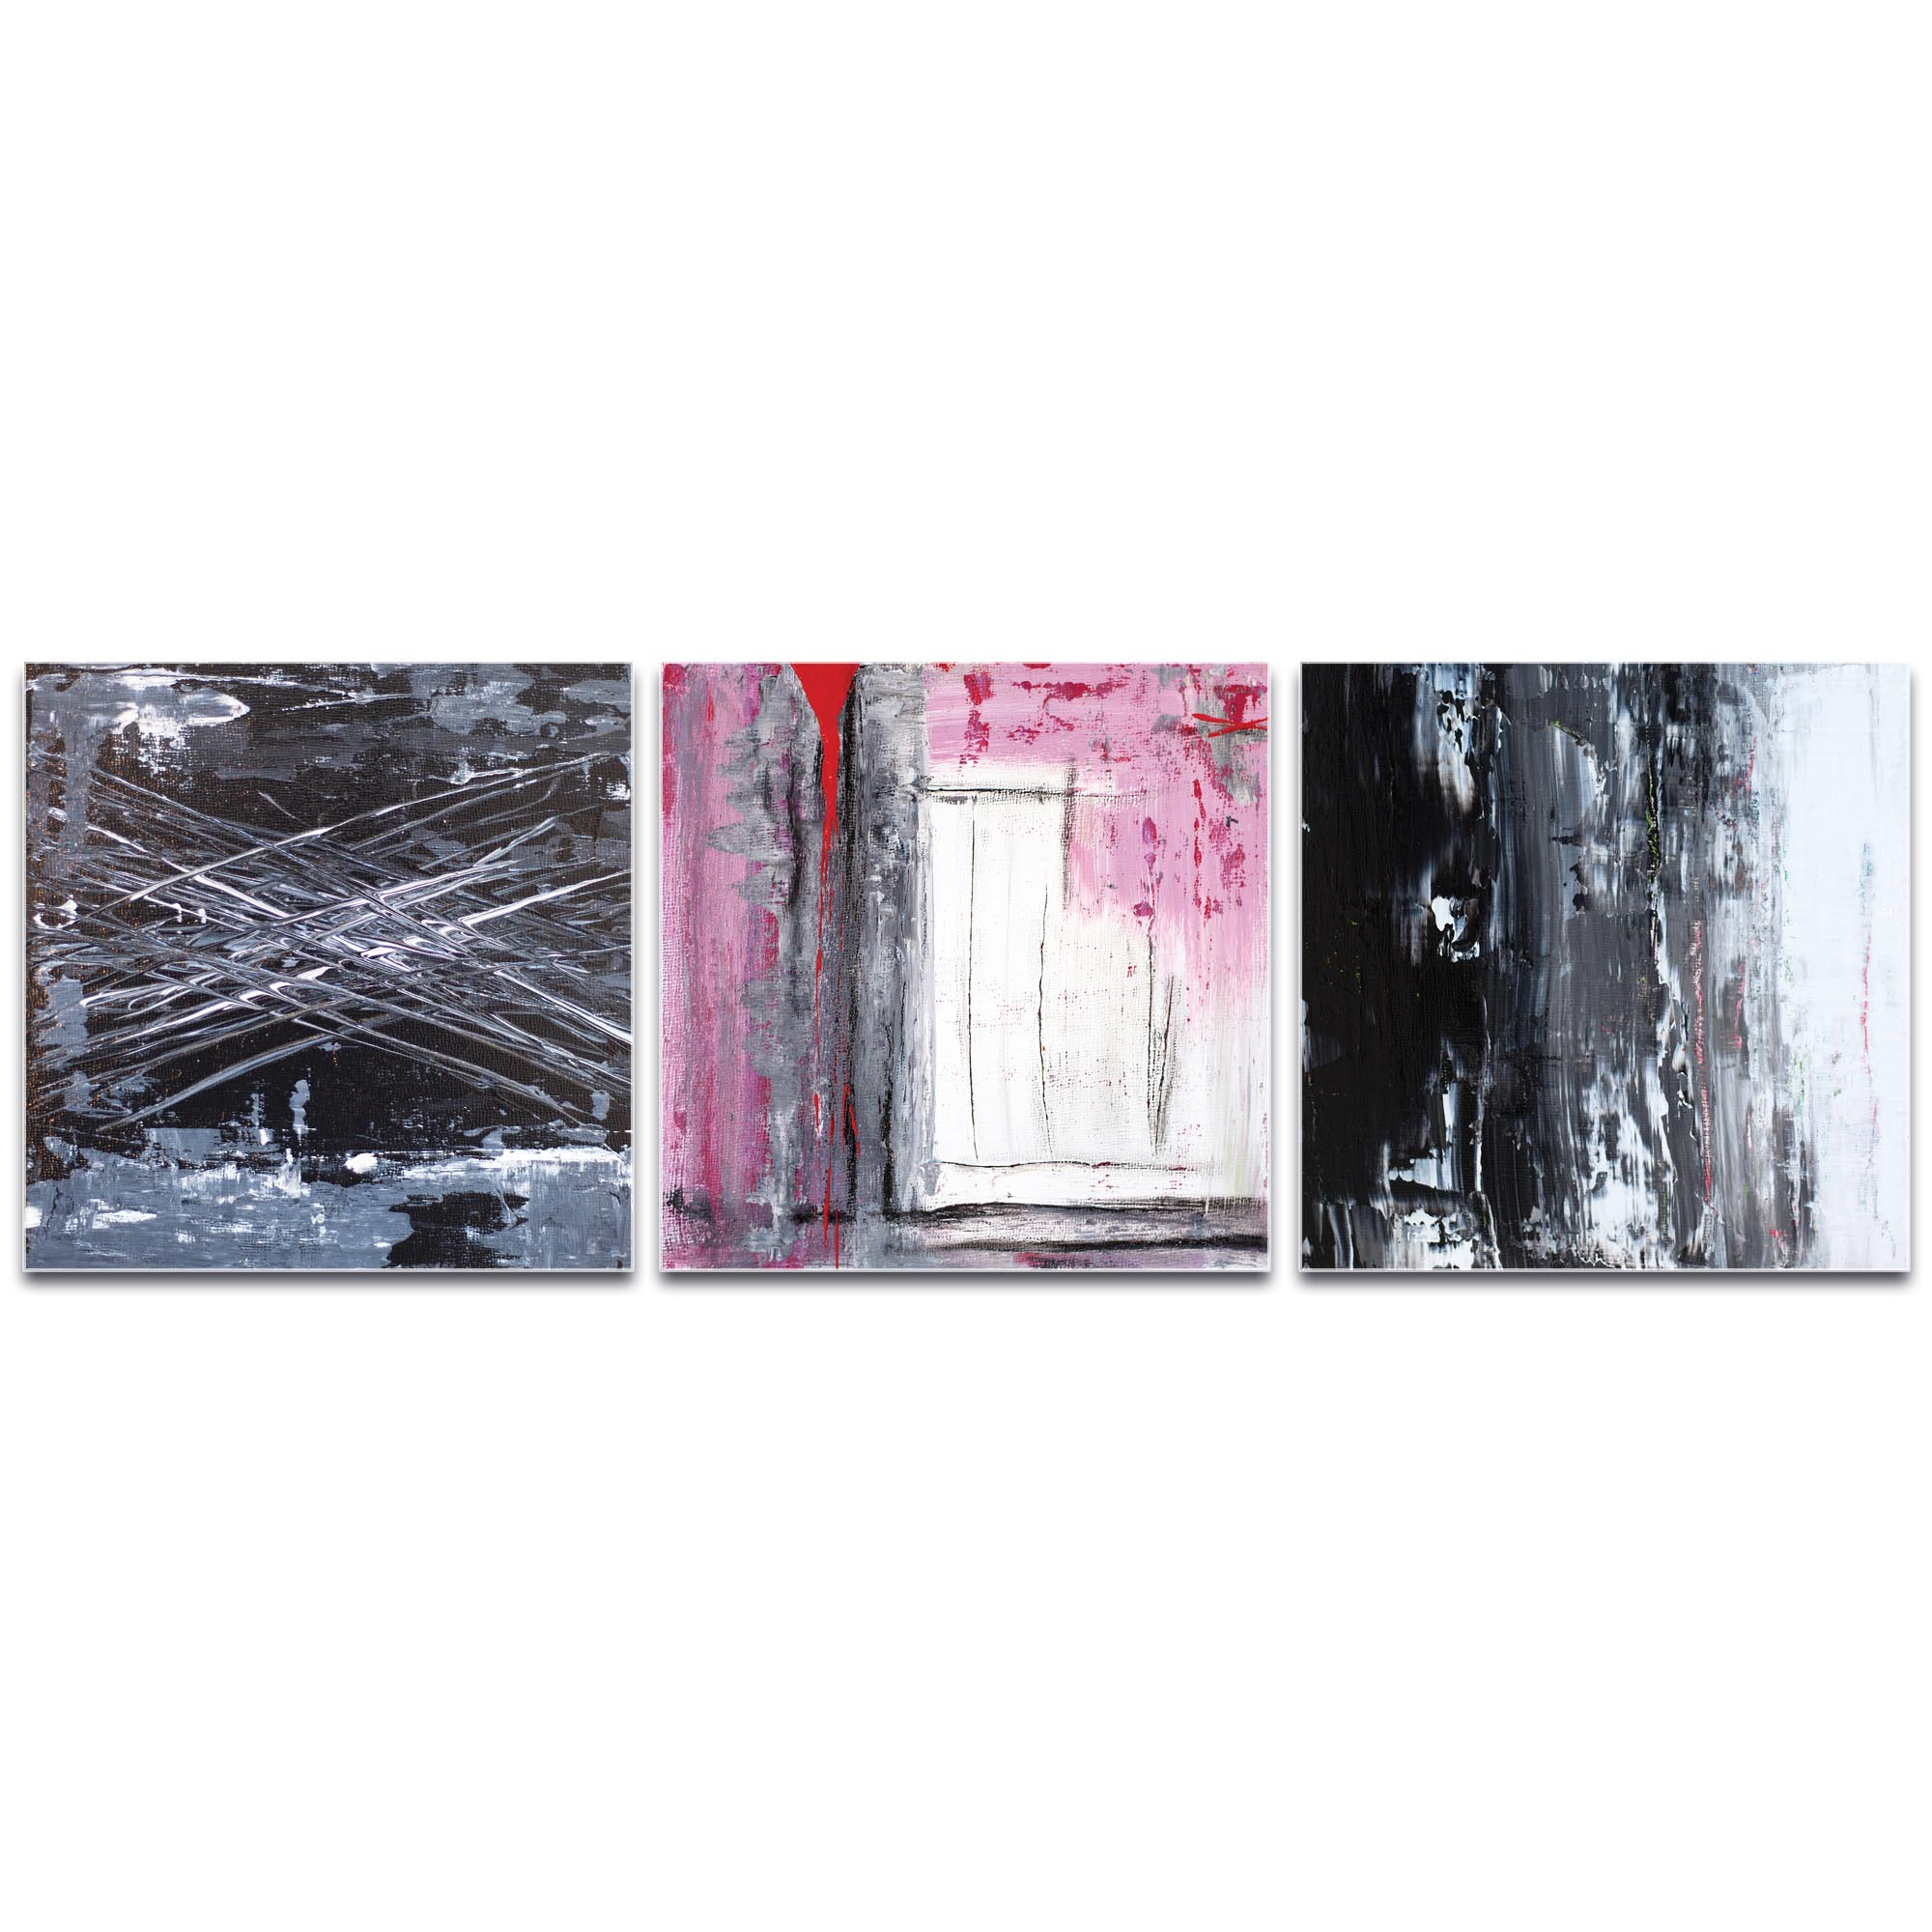 Abstract Wall Art 'Urban Triptych 6 Large' - Urban Decor on Metal or Plexiglass - Image 2